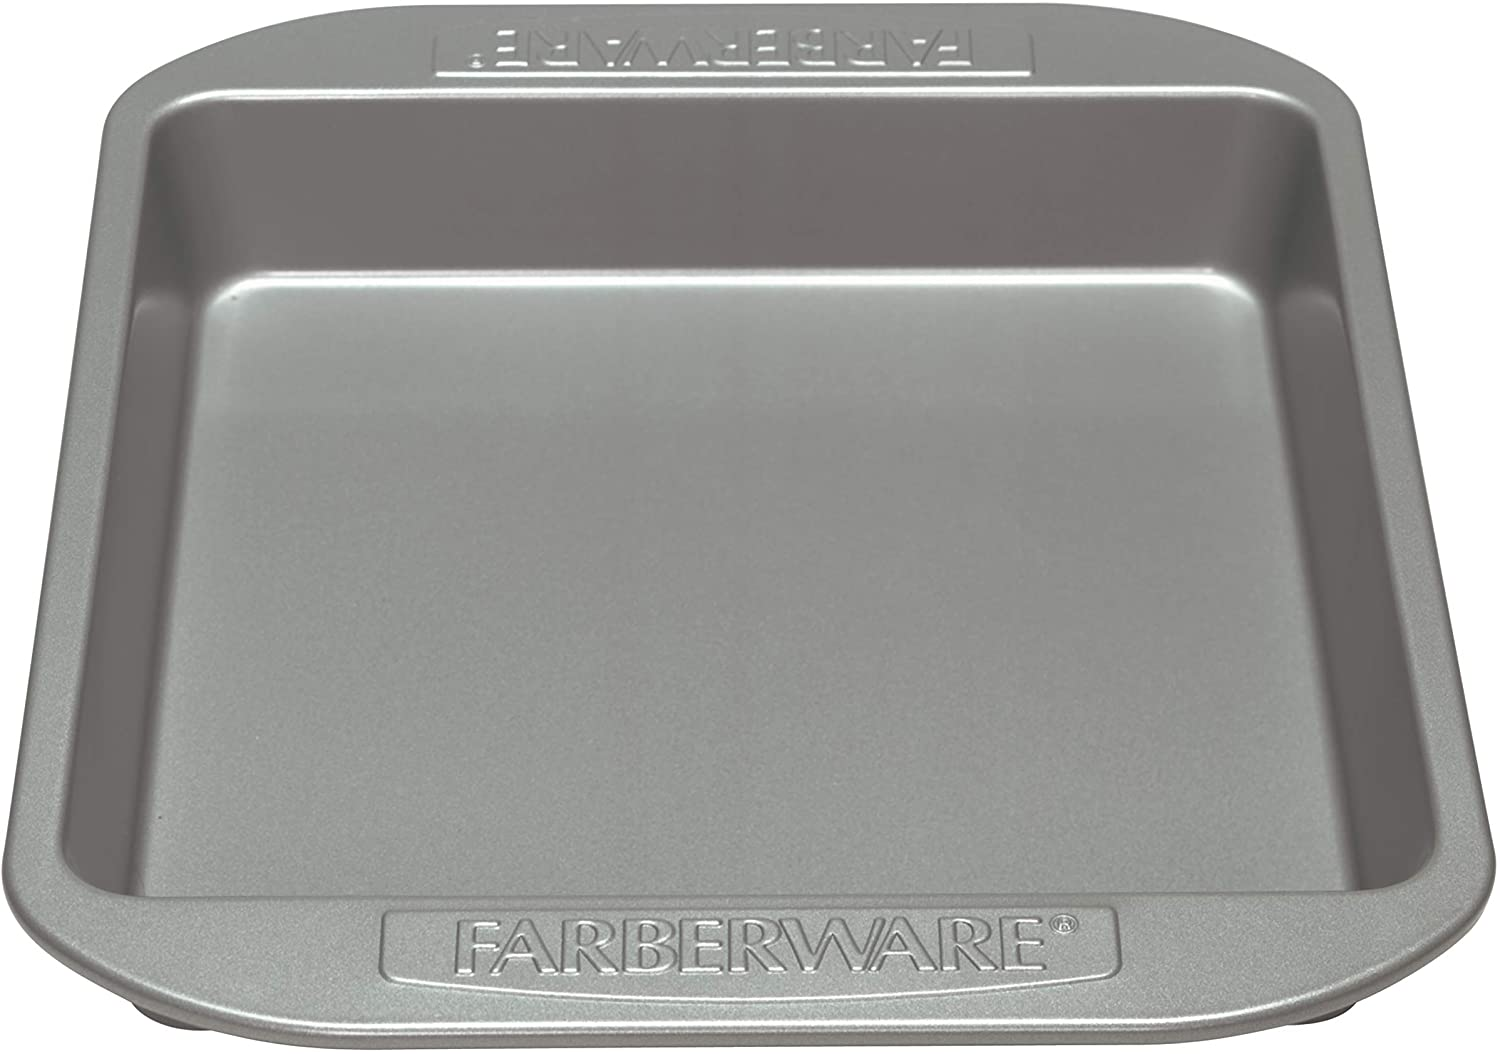 Farberware Nonstick Cake Pan, Square - 9 Inch